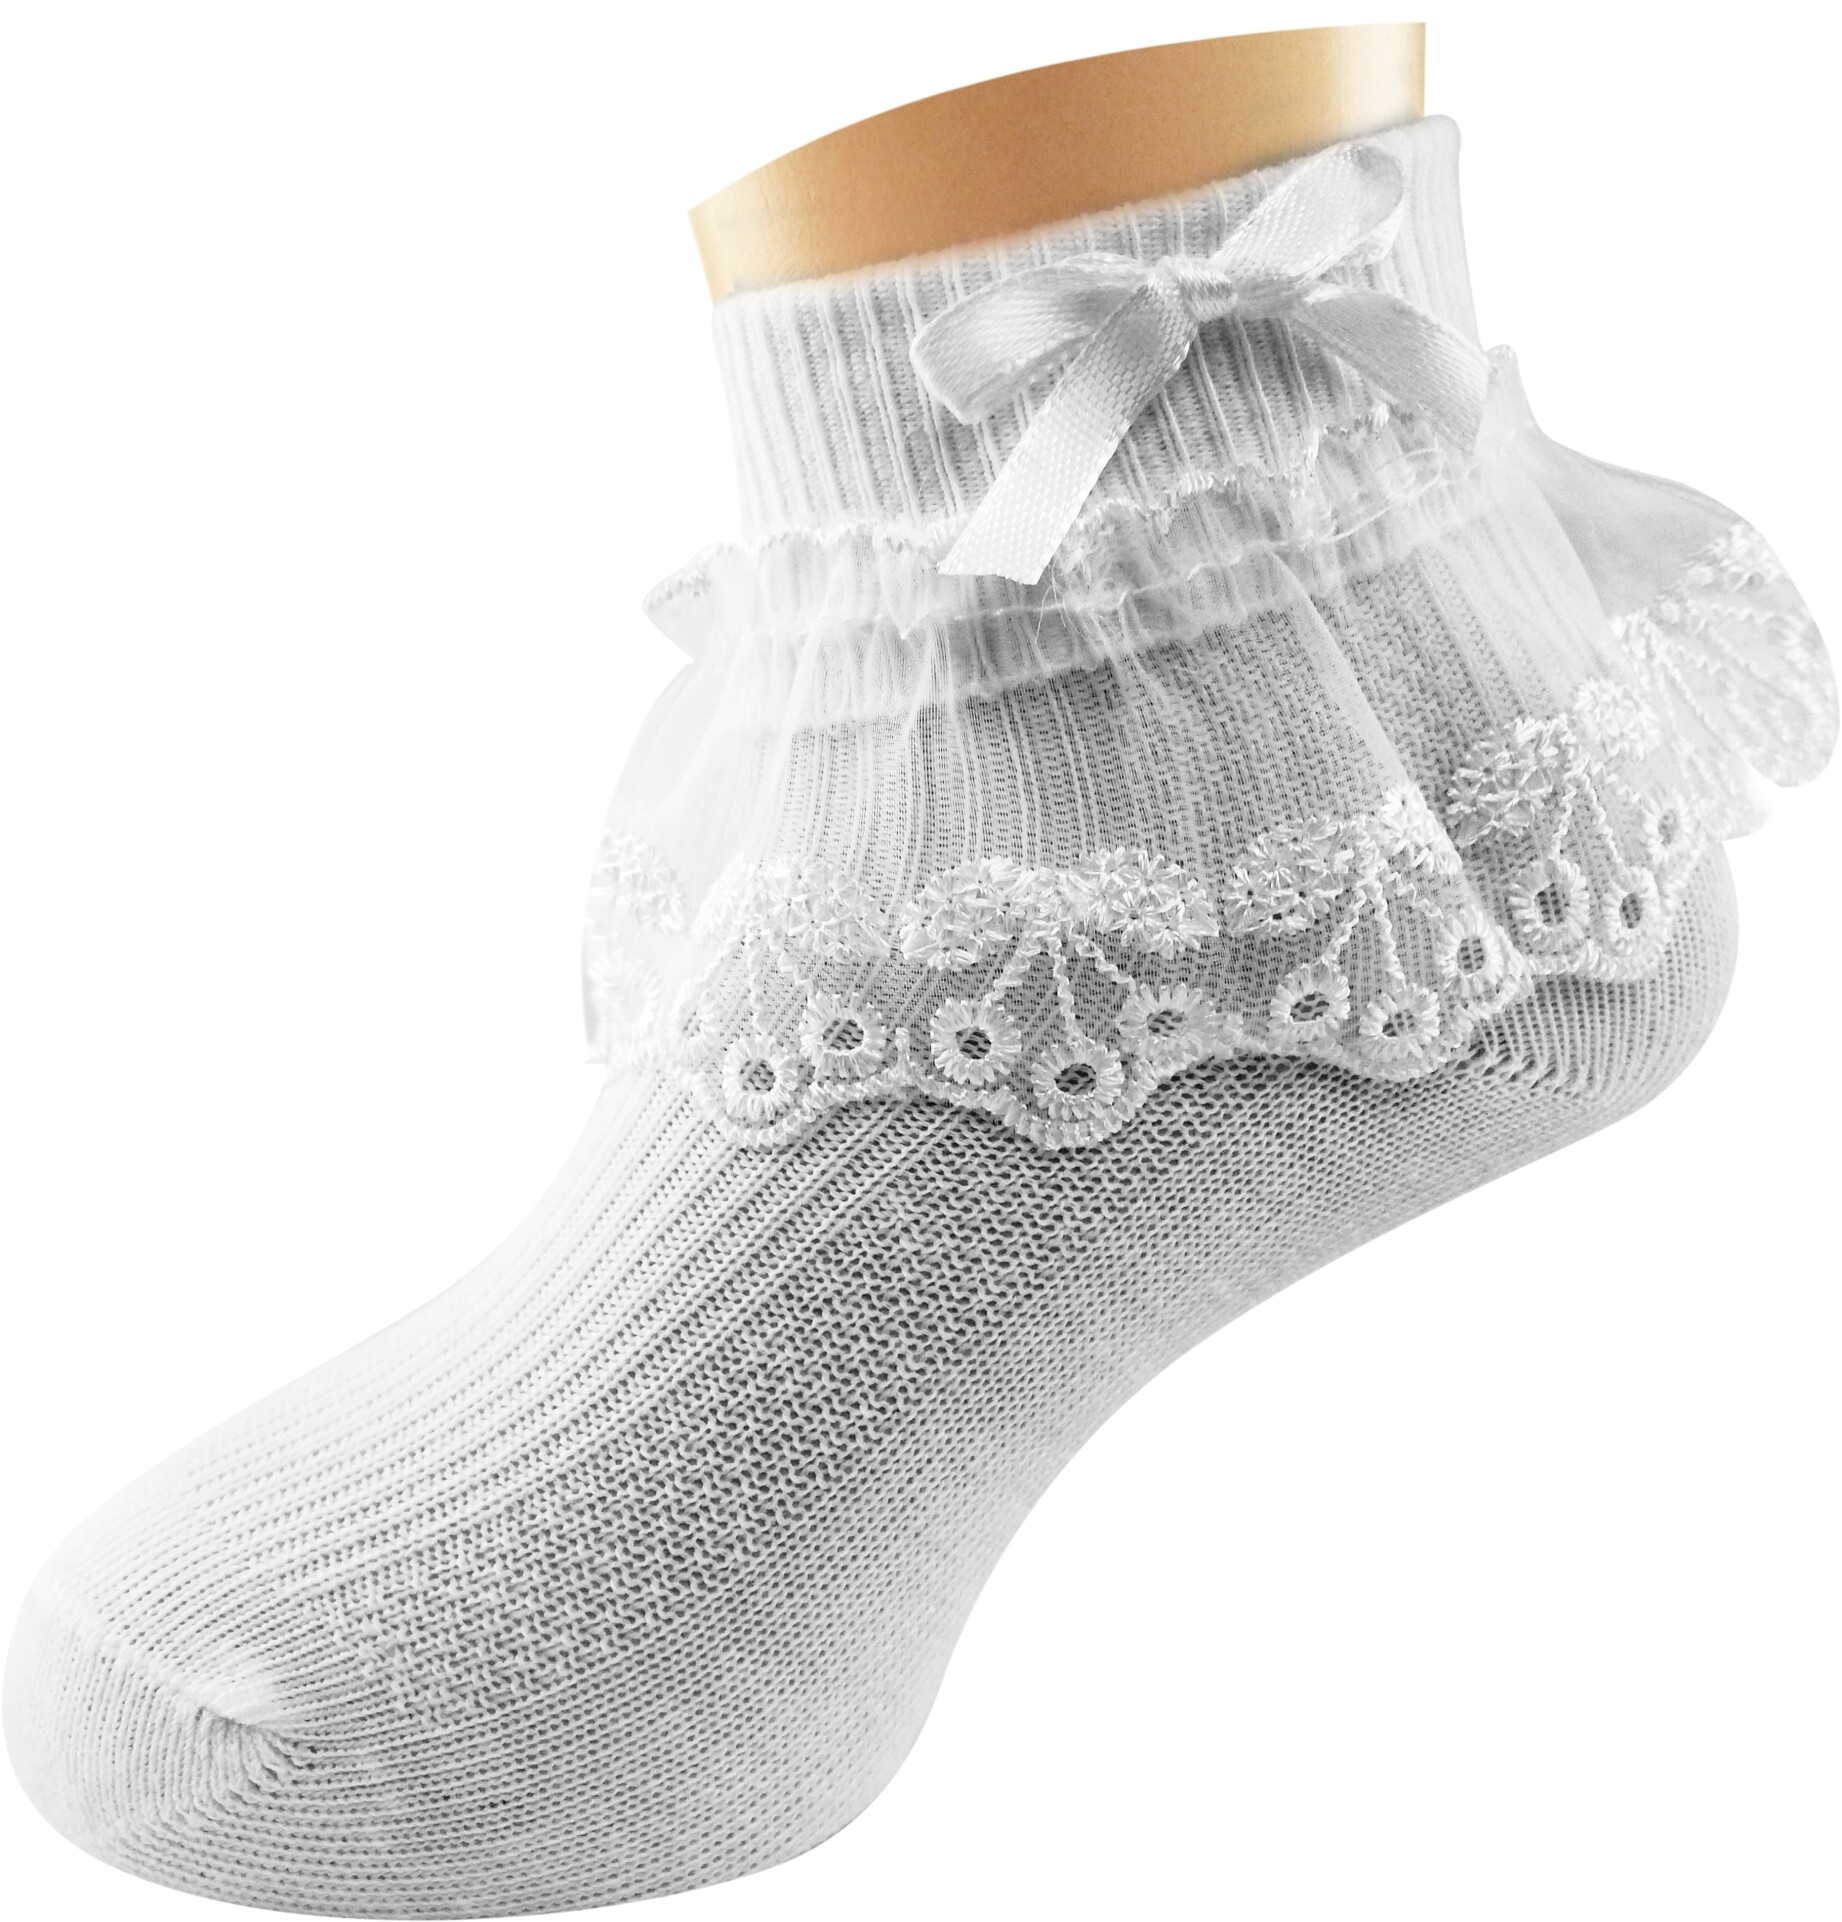 Semlouis Lace Children Ankle Socks – Assorted /Design 7/PAIR